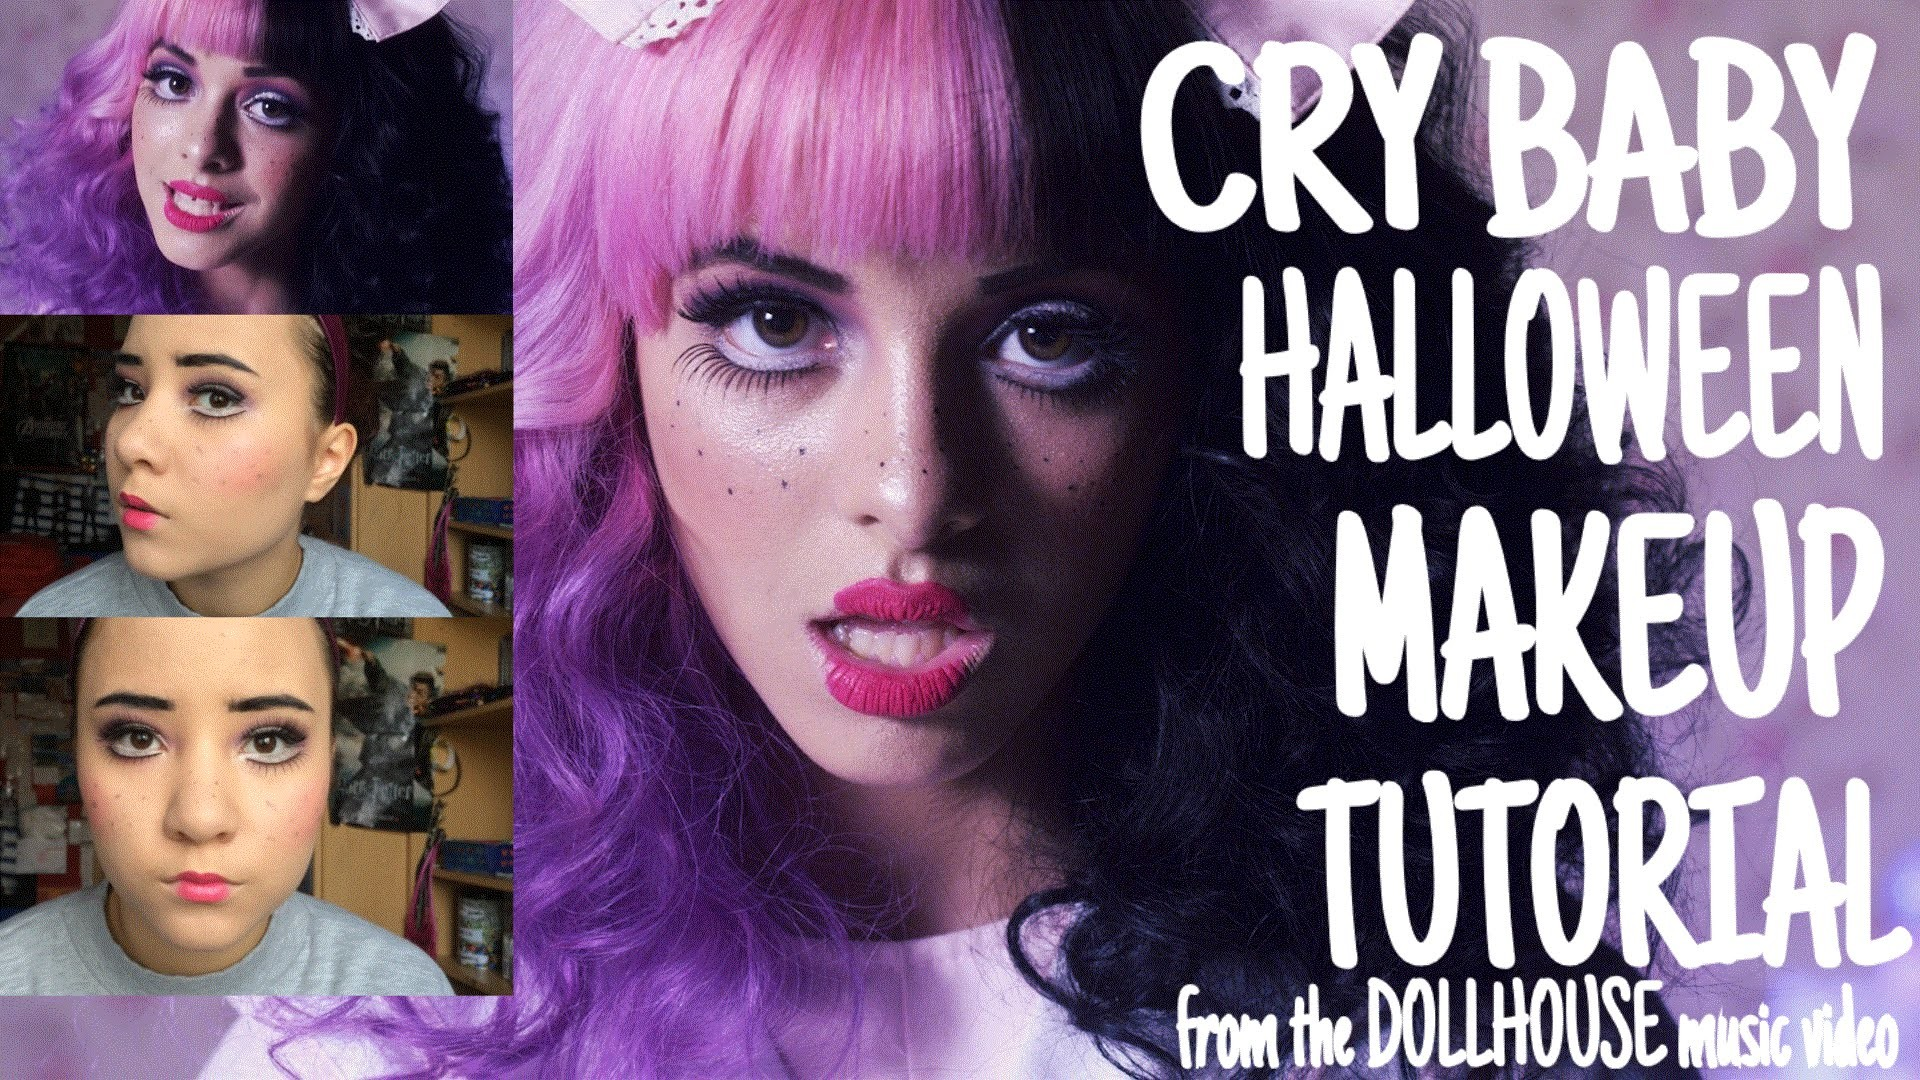 1920x1080 CRY BABY (Melanie Martinez - Dollhouse) // HALLOWEEN MAKEUP TUTORIAL -  YouTube